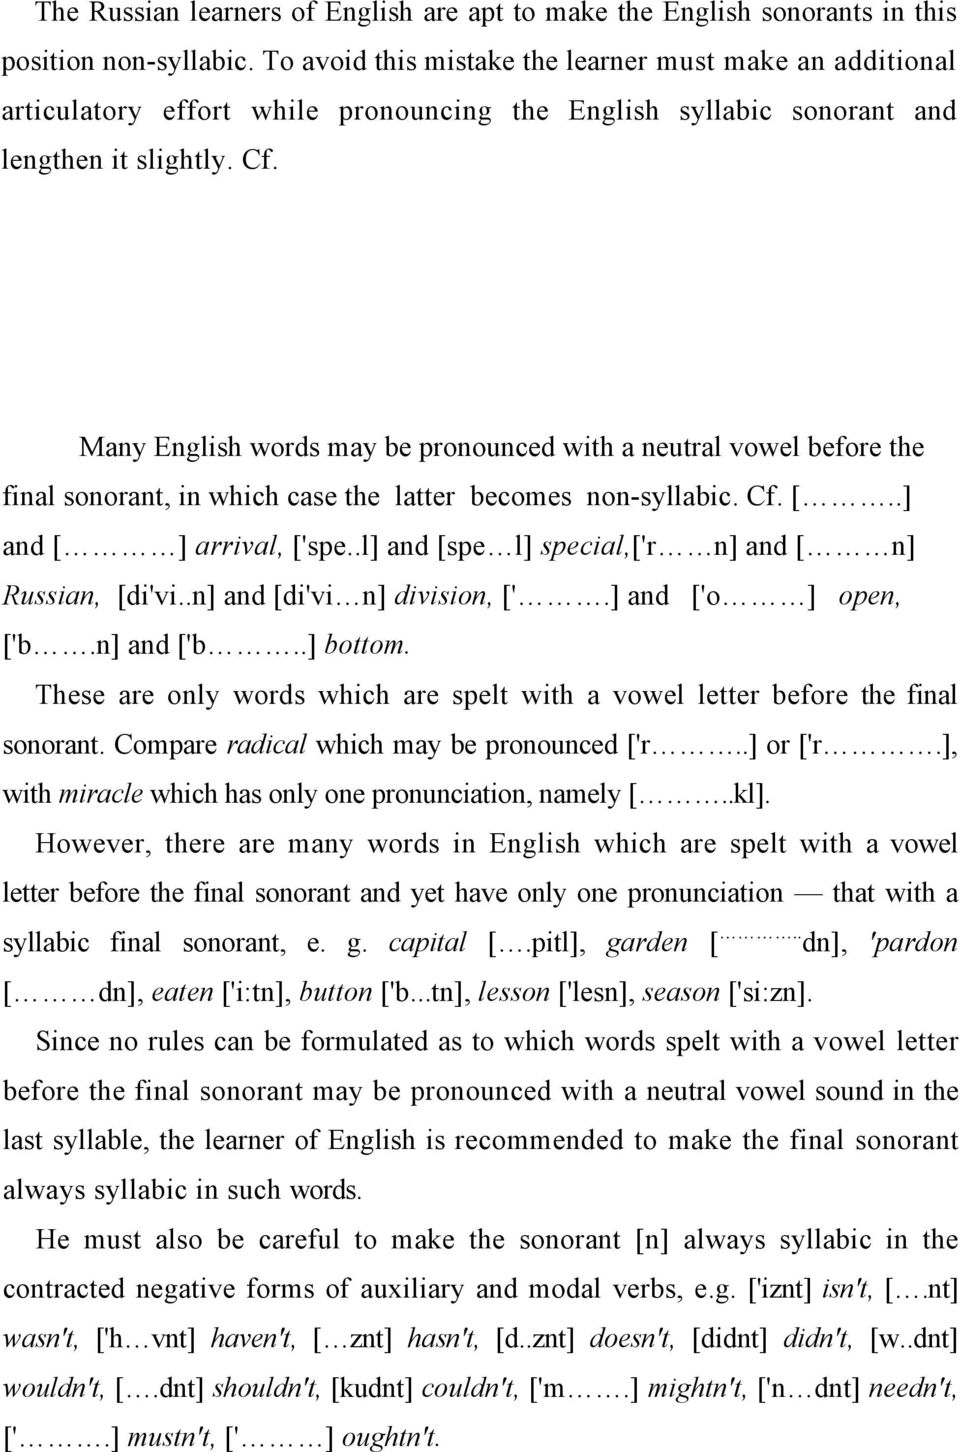 Many English words may be pronounced with a neutral vowel before the final sonorant, in which case the latter becomes non-syllabic. Cf. [..] and [ ] arrival, ['spe.